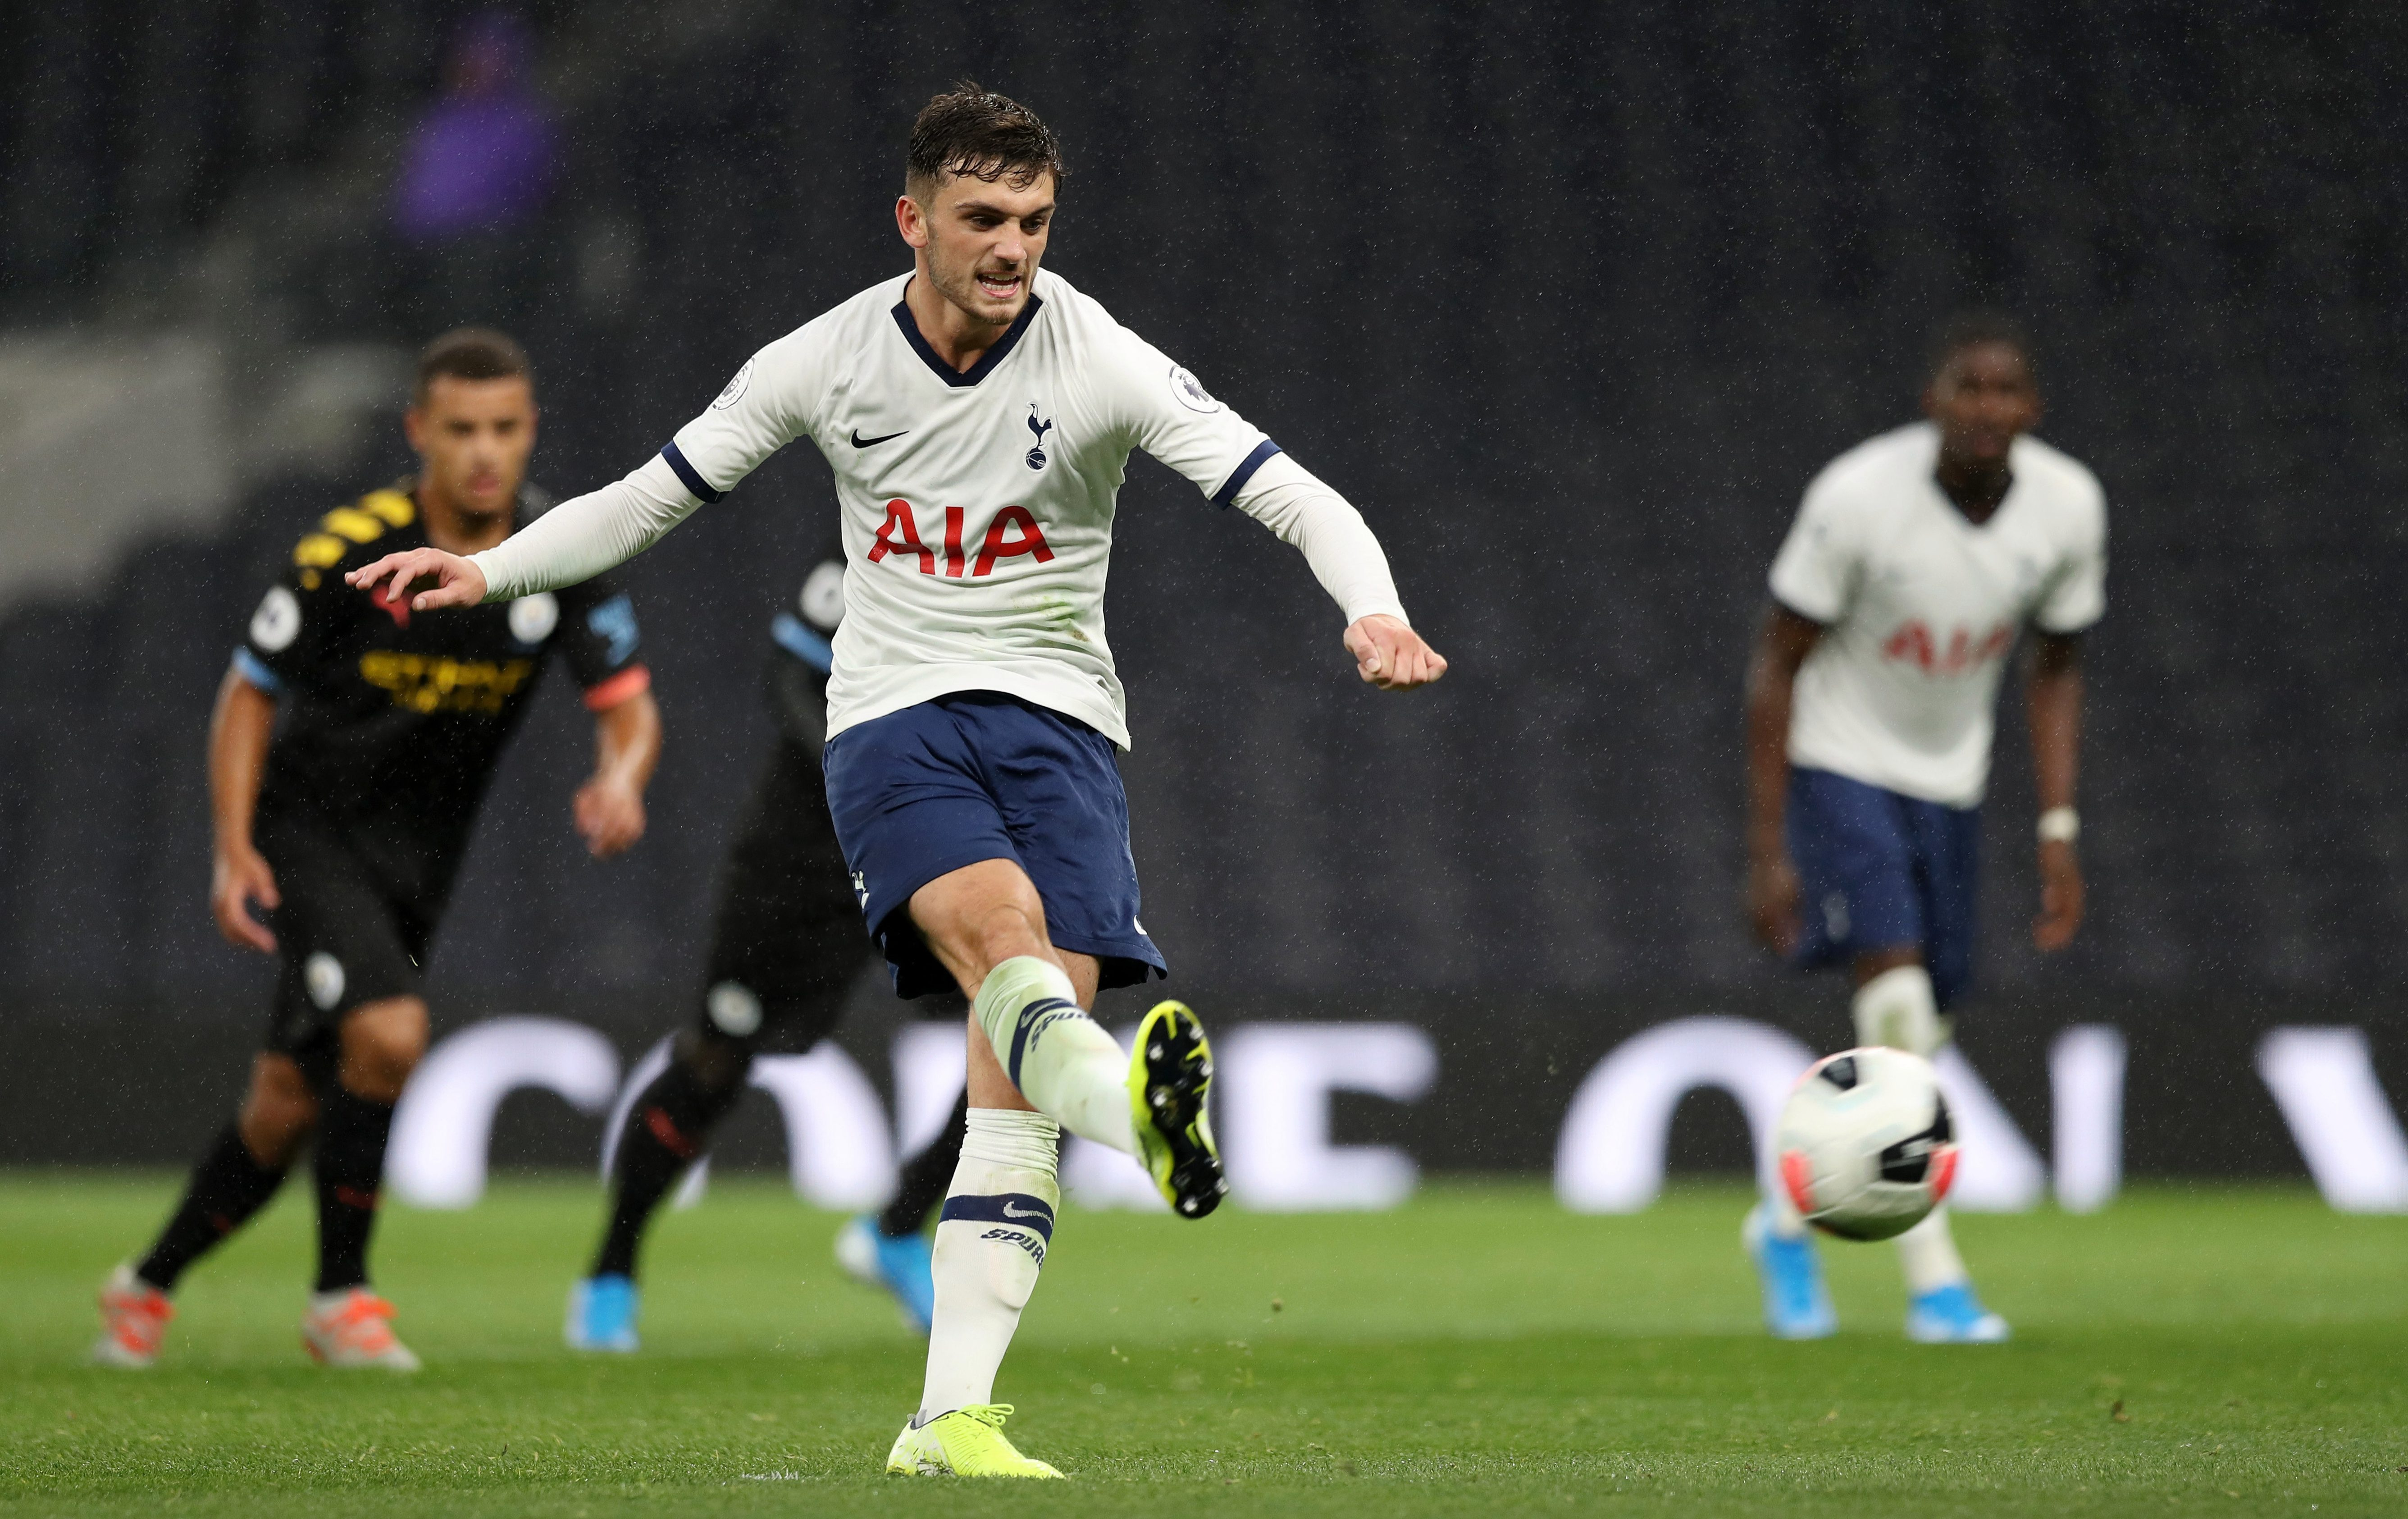 Parrott plays for Tottenham's youth team in the Premier League 2